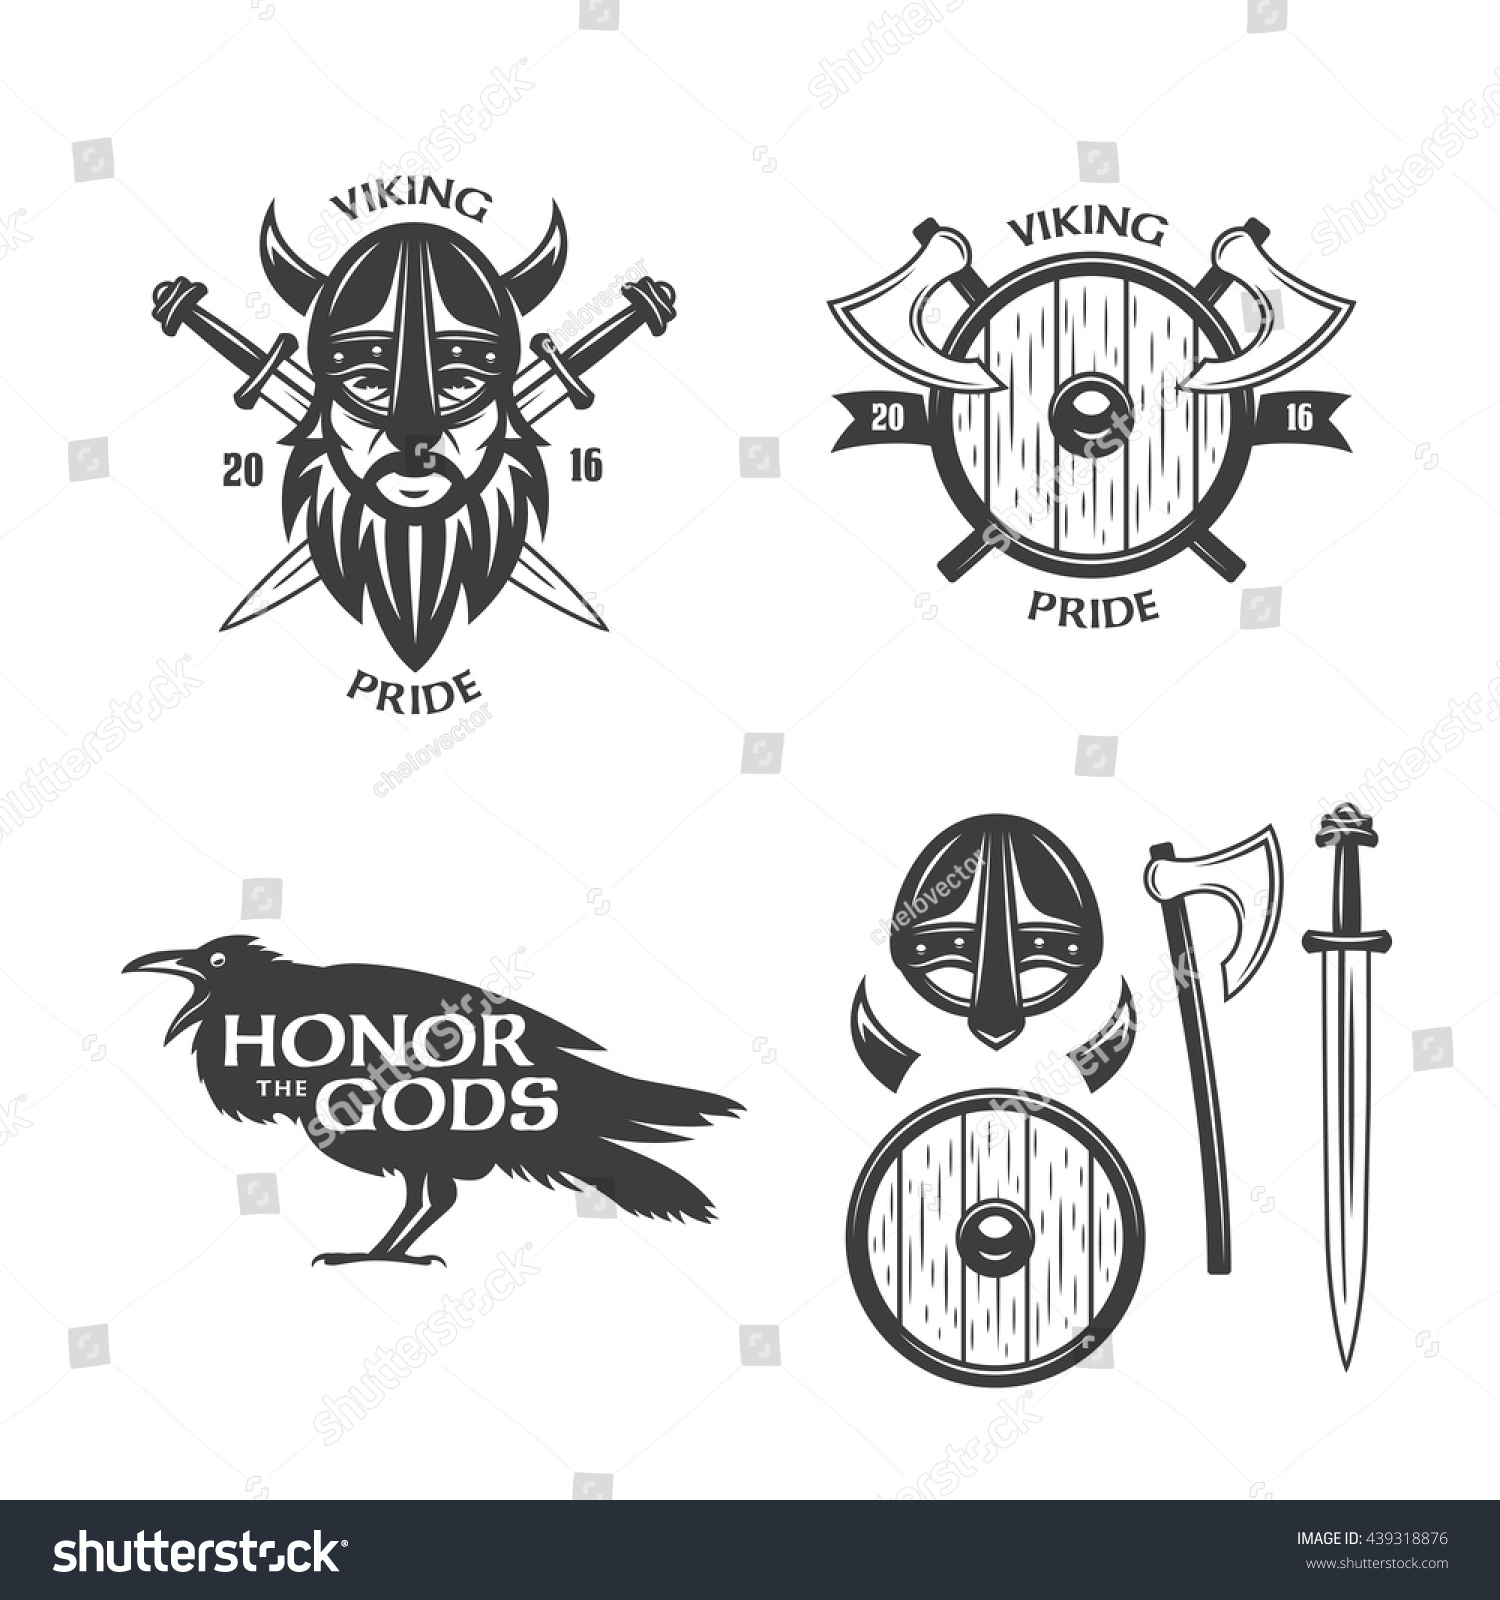 Shirt design elements - Vikings Related T Shirt Graphics And Design Elements Viking Pride Slogan Honor The